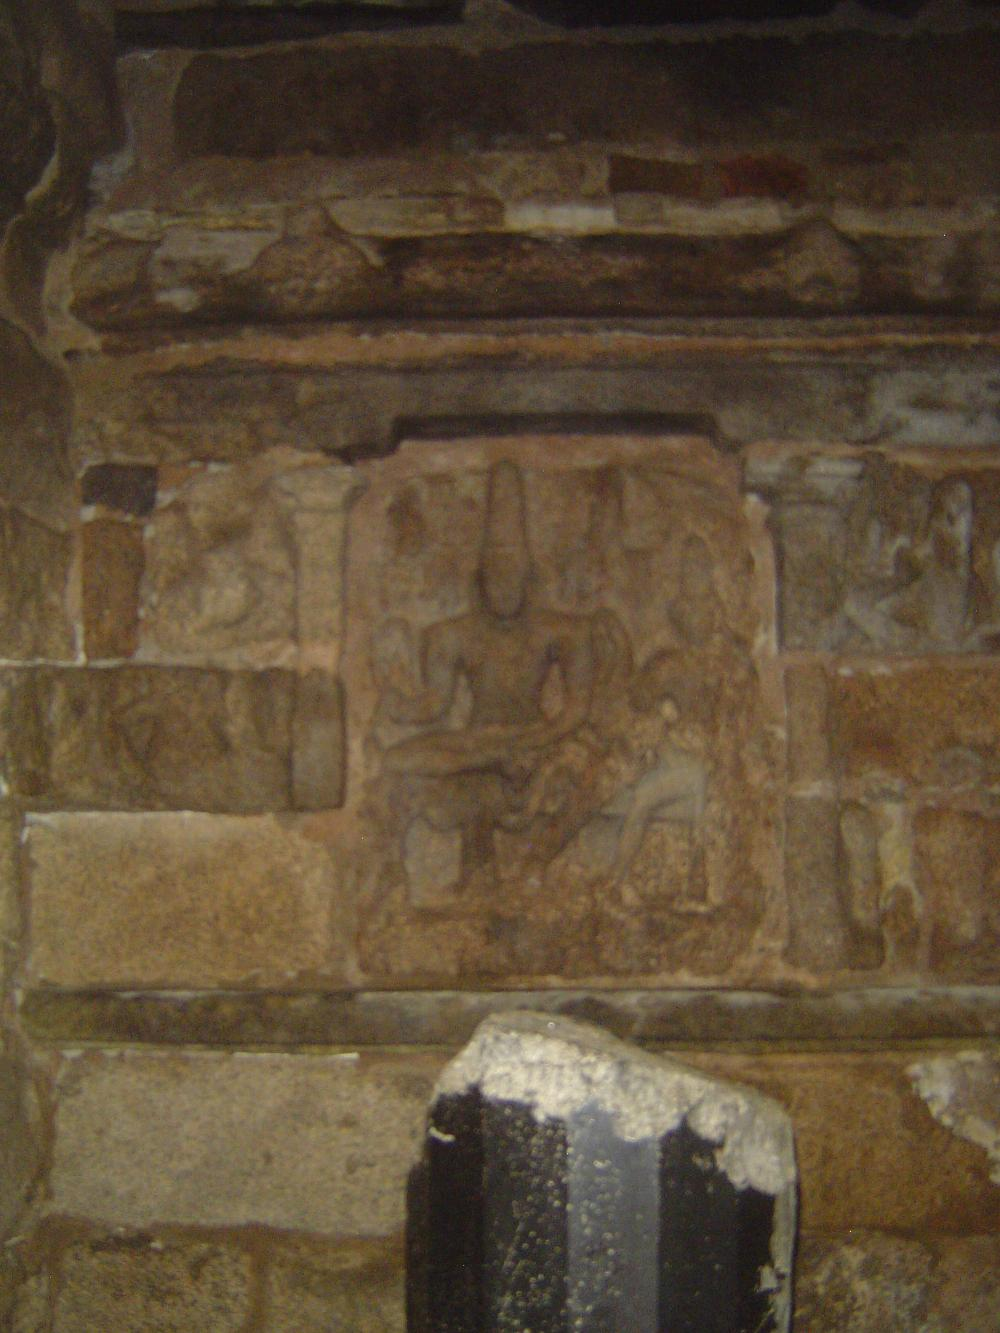 Peninsular India: Mamallapuram 3: Shore Temple picture 12